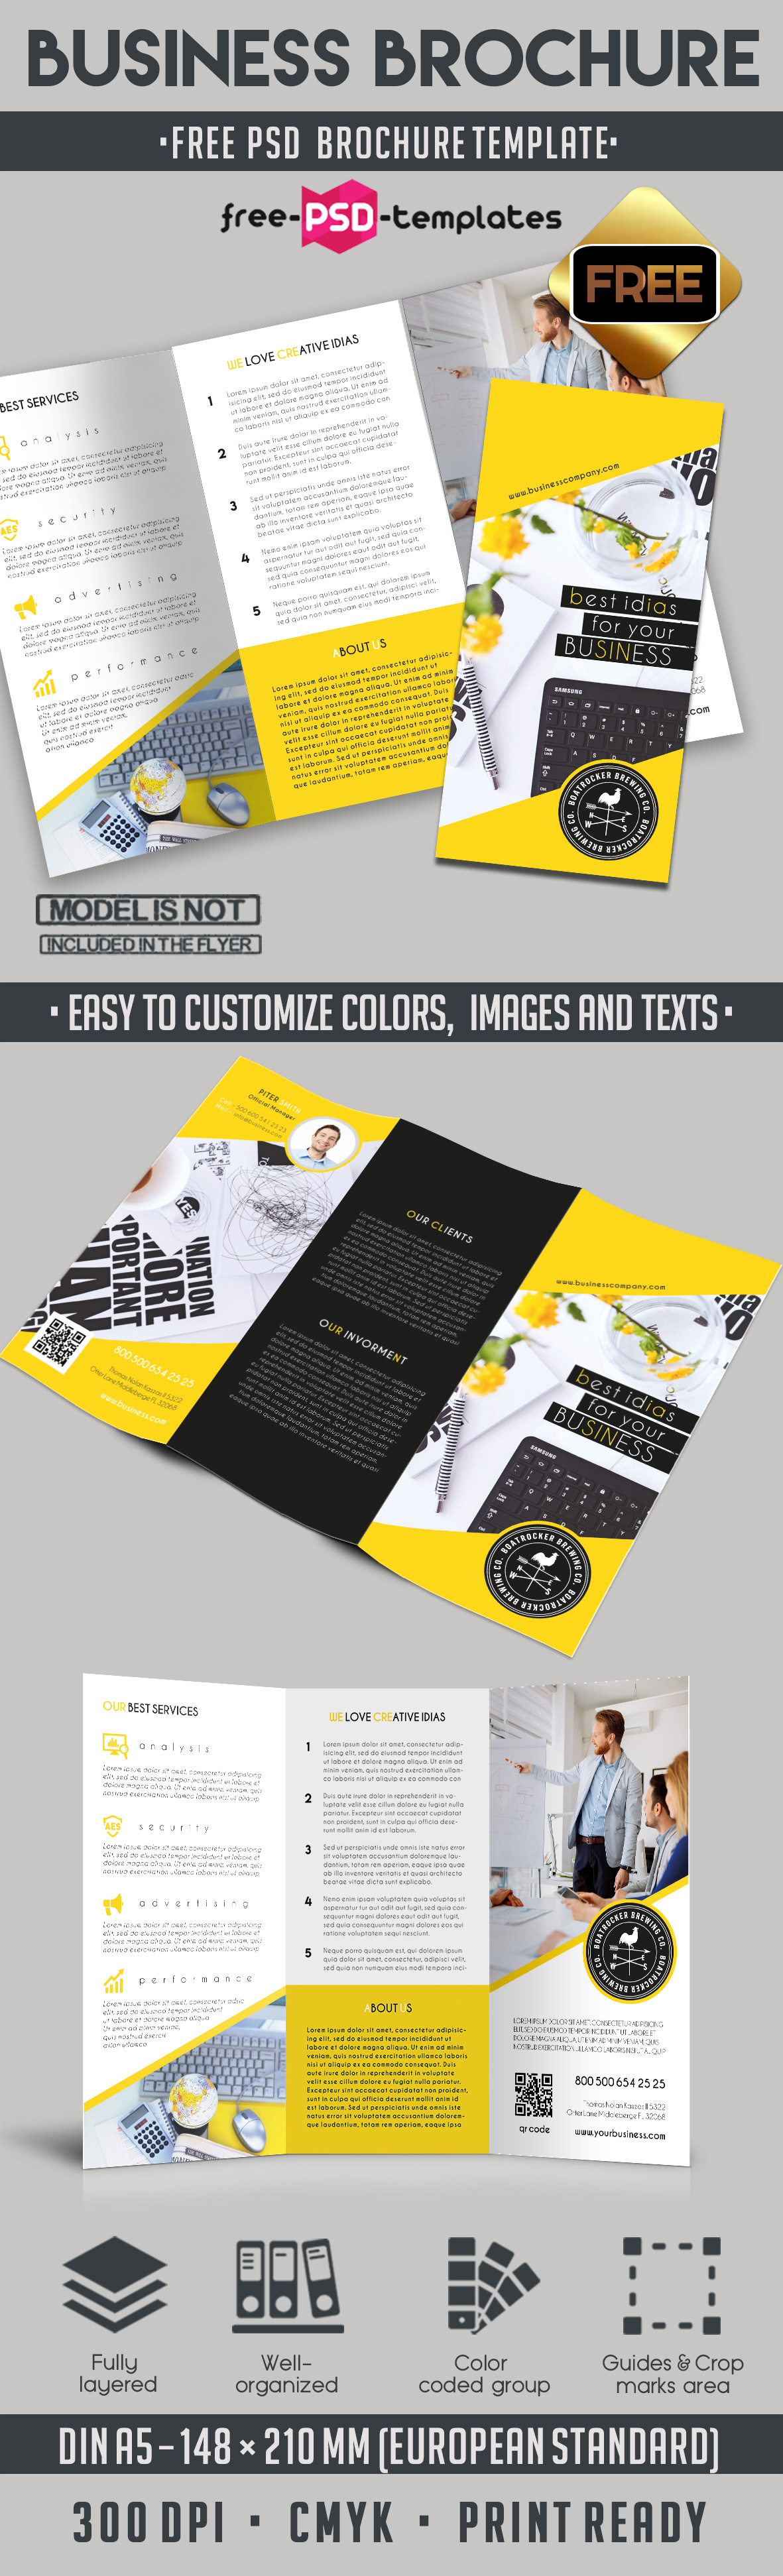 brochure design templates free download psd - free business tri fold brochure psd template free psd